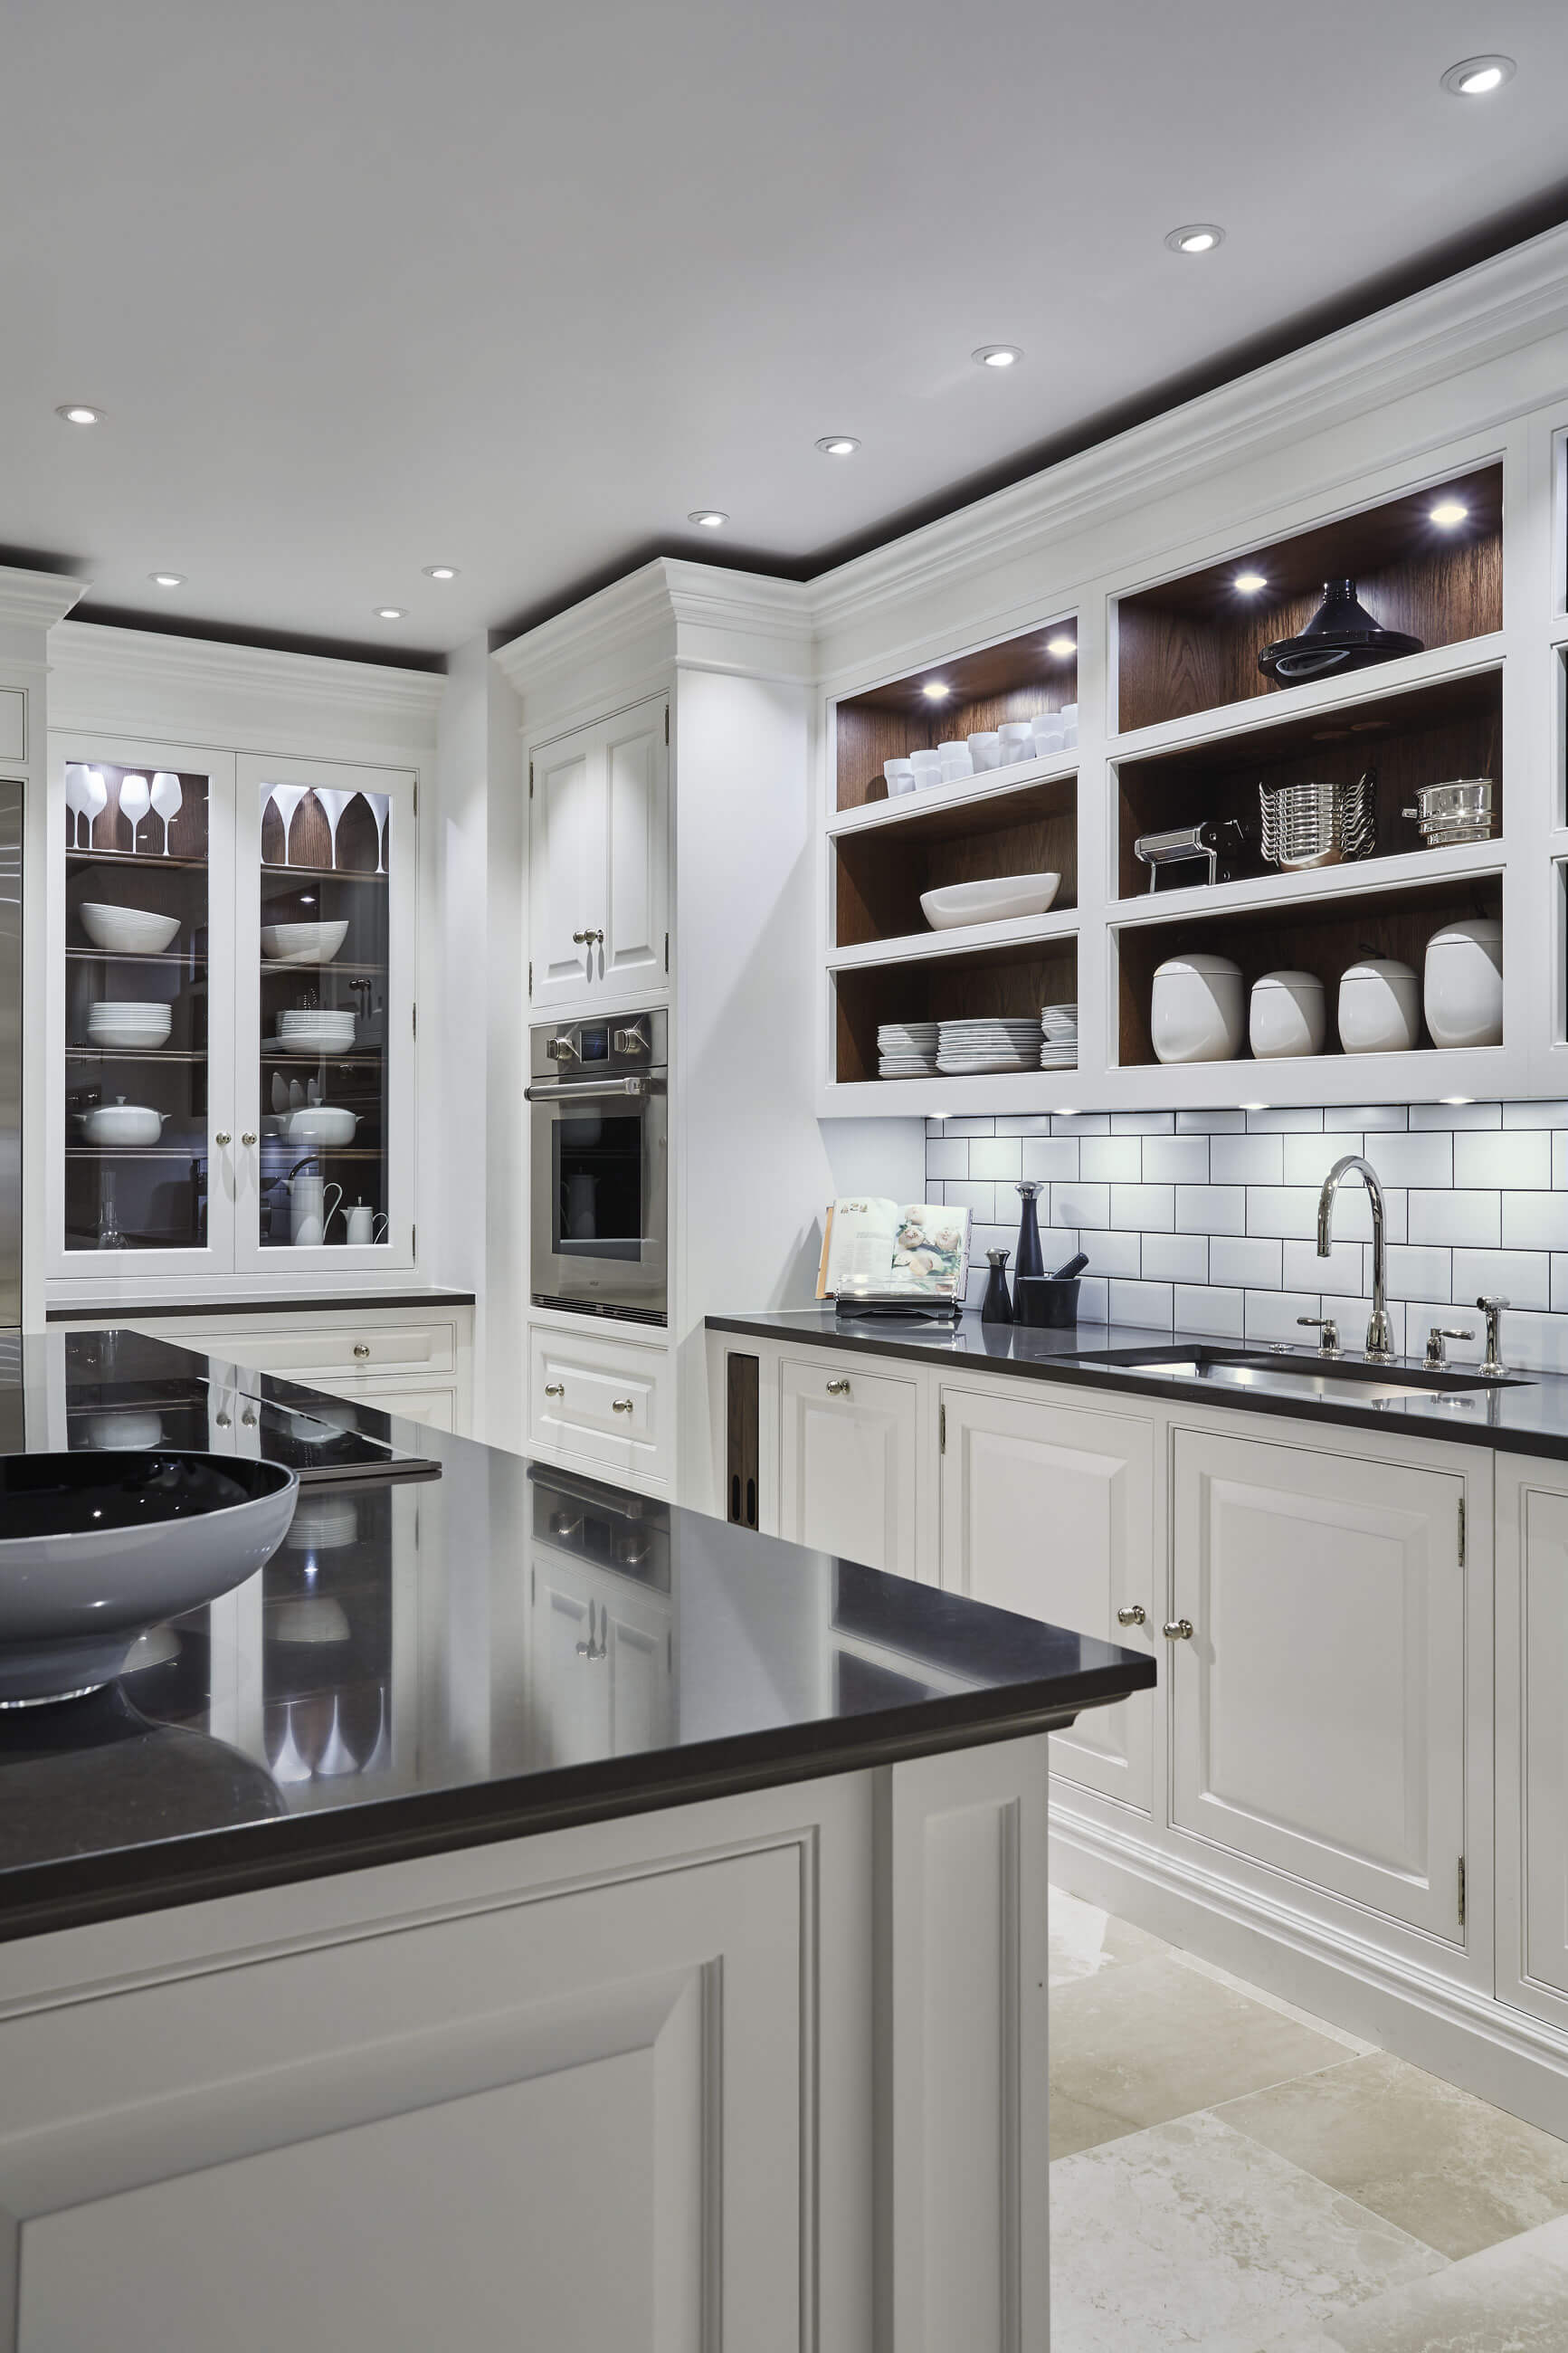 Grand kitchen designs Kitchen design cork city